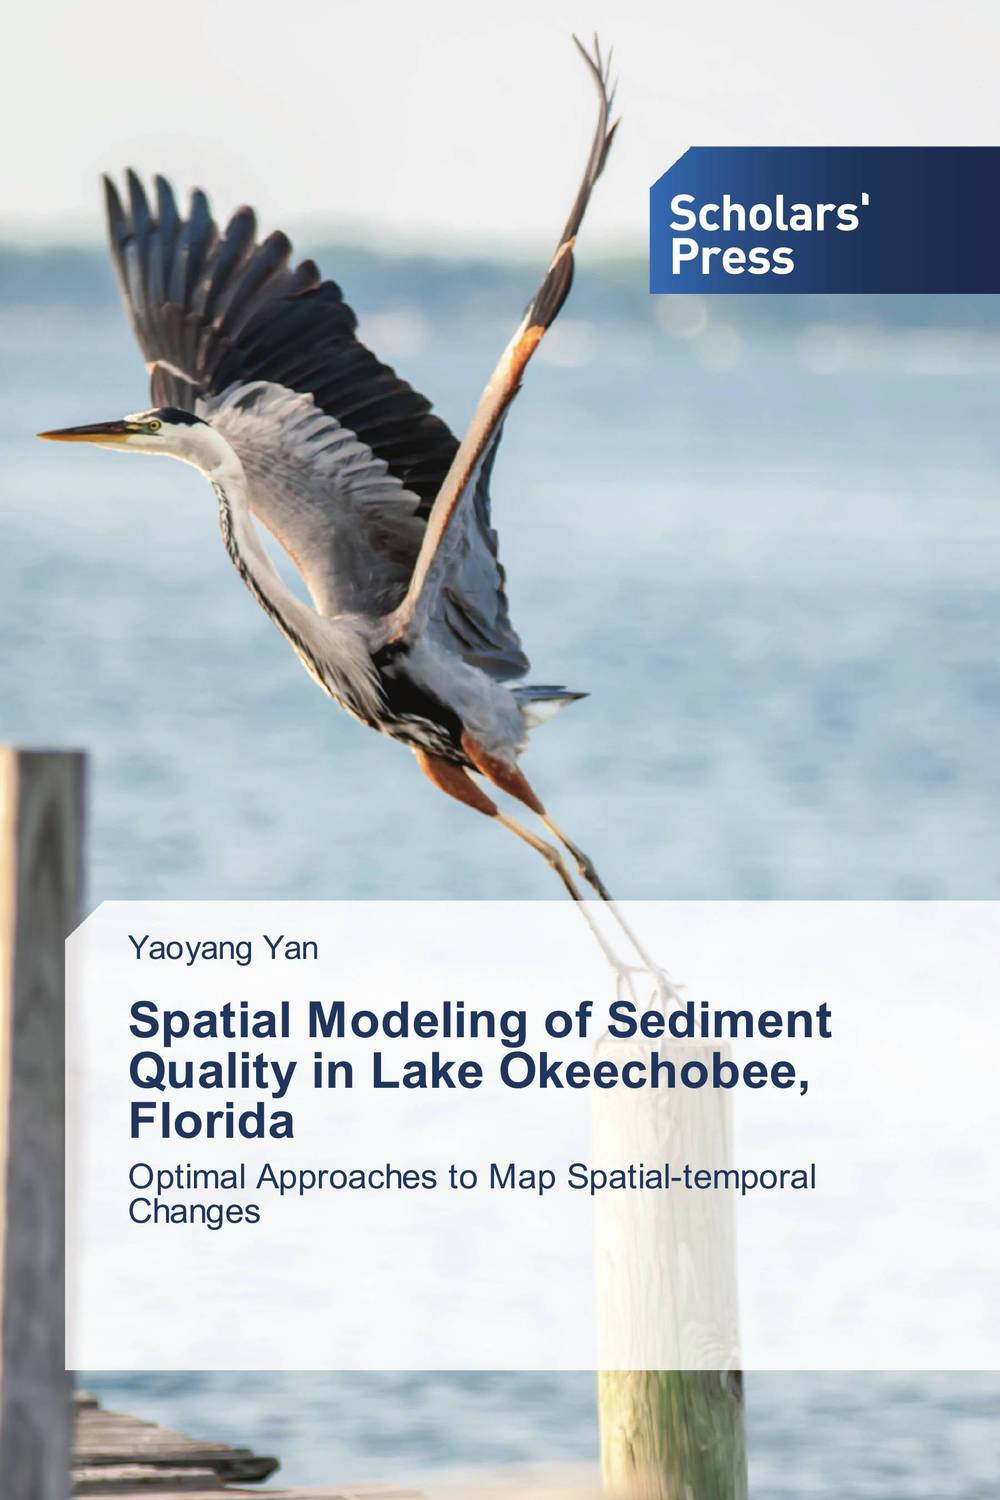 Spatial Modeling of Sediment Quality in Lake Okeechobee, Florida linear regression models with heteroscedastic errors